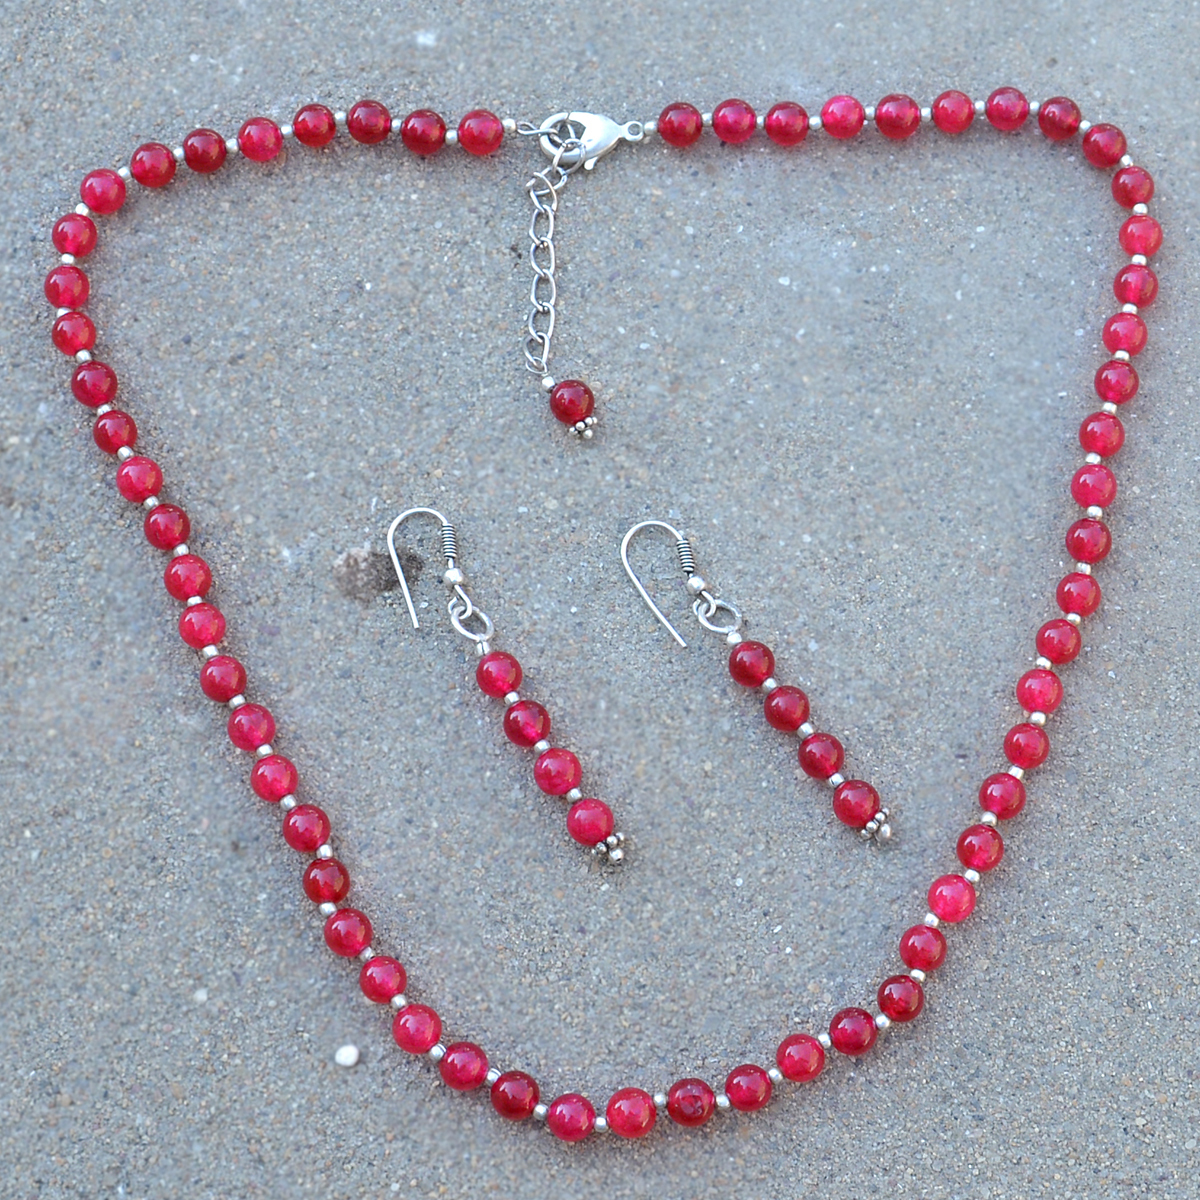 Lobster-Claw, Handmade Jewelry Manufacturer 925 Sterling Silver , 6mm Round Beaded Pink Quartz, Jaipur Rajasthan India Layering Necklace Set